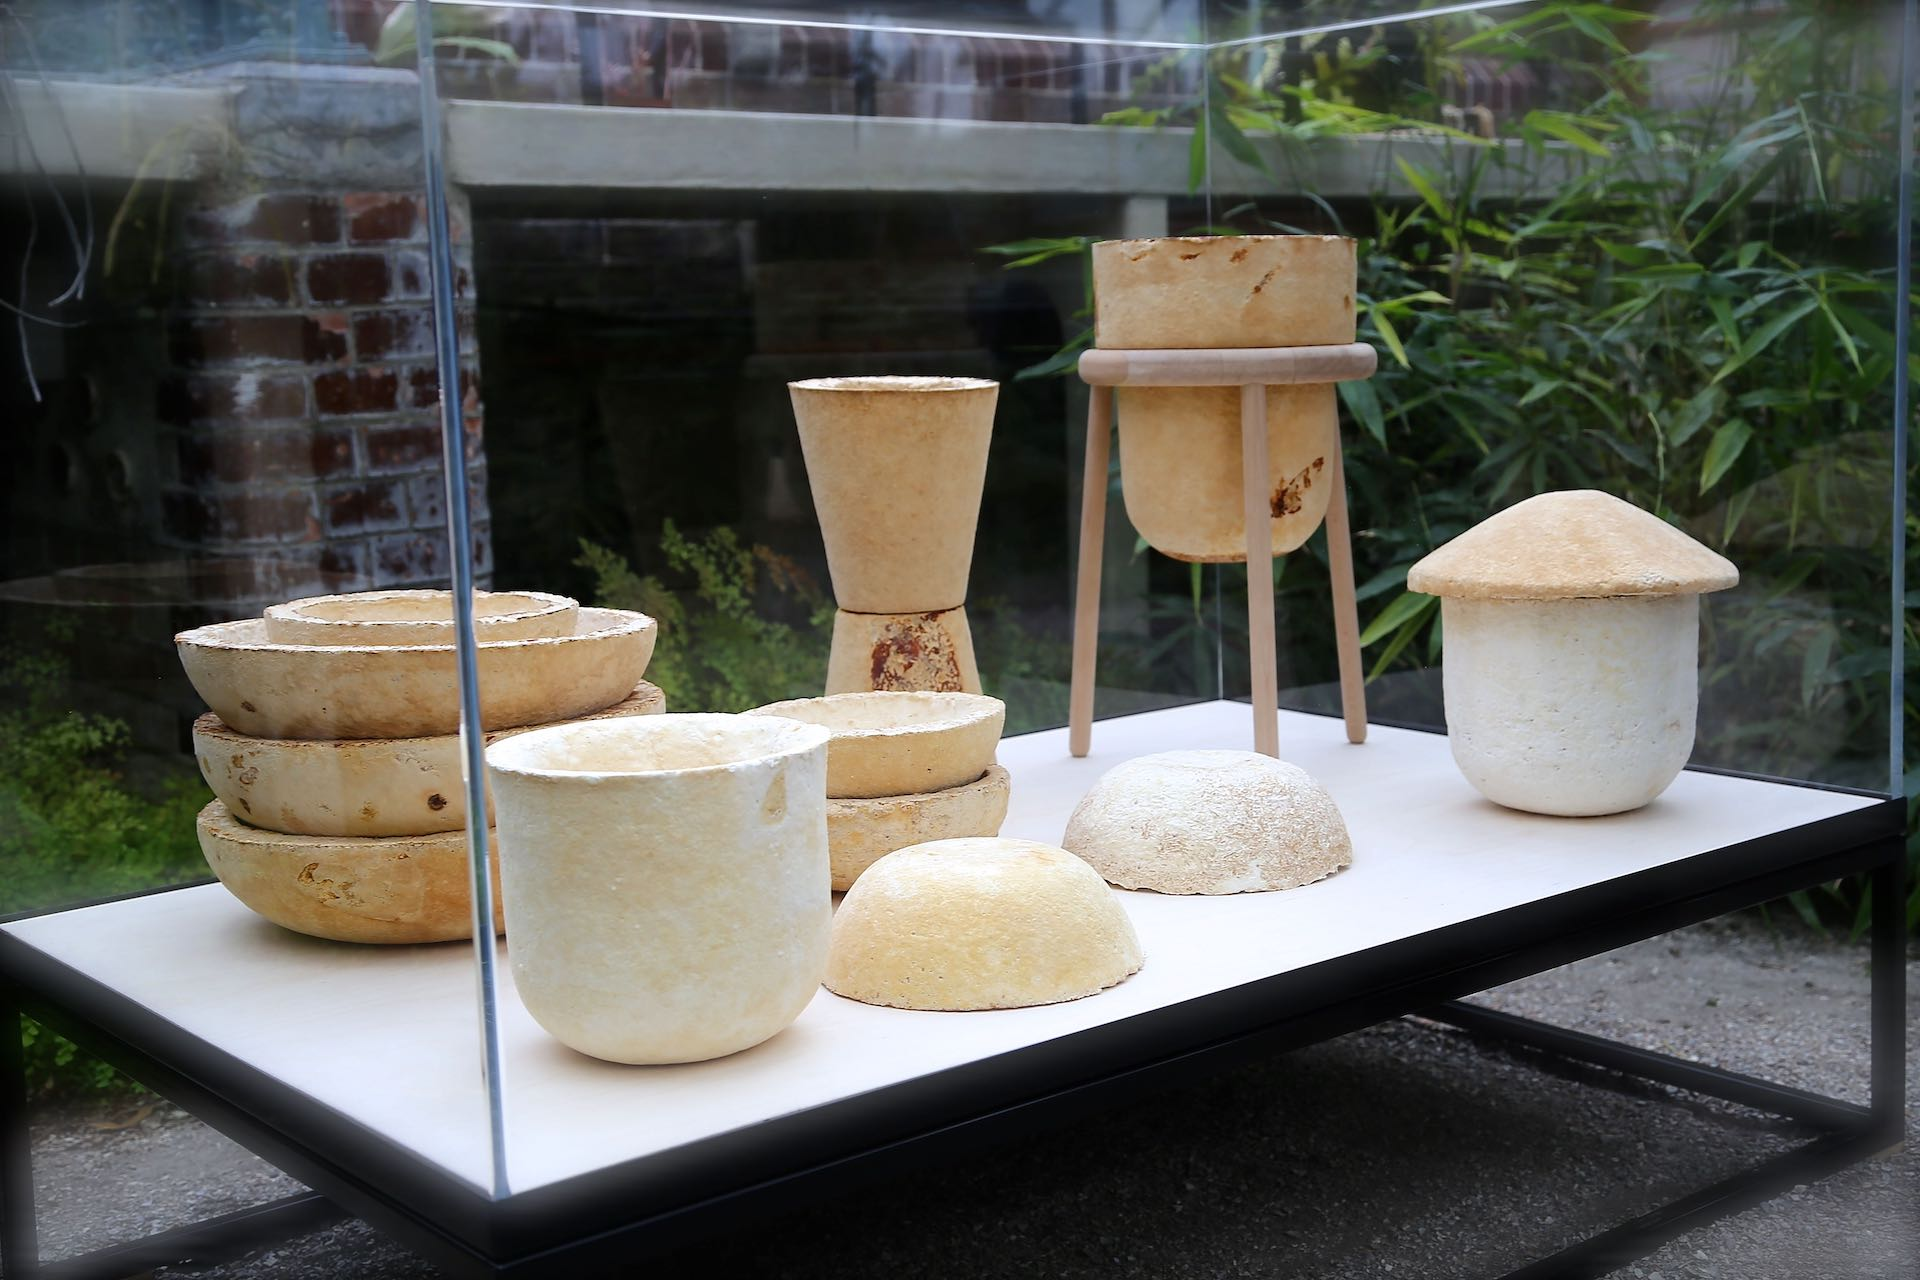 Objects grown using Mycelia-based technology from Officina Corpuscoli's Growing Lab. Photo © Officina Corpuscoli /  Maurizio Montalti